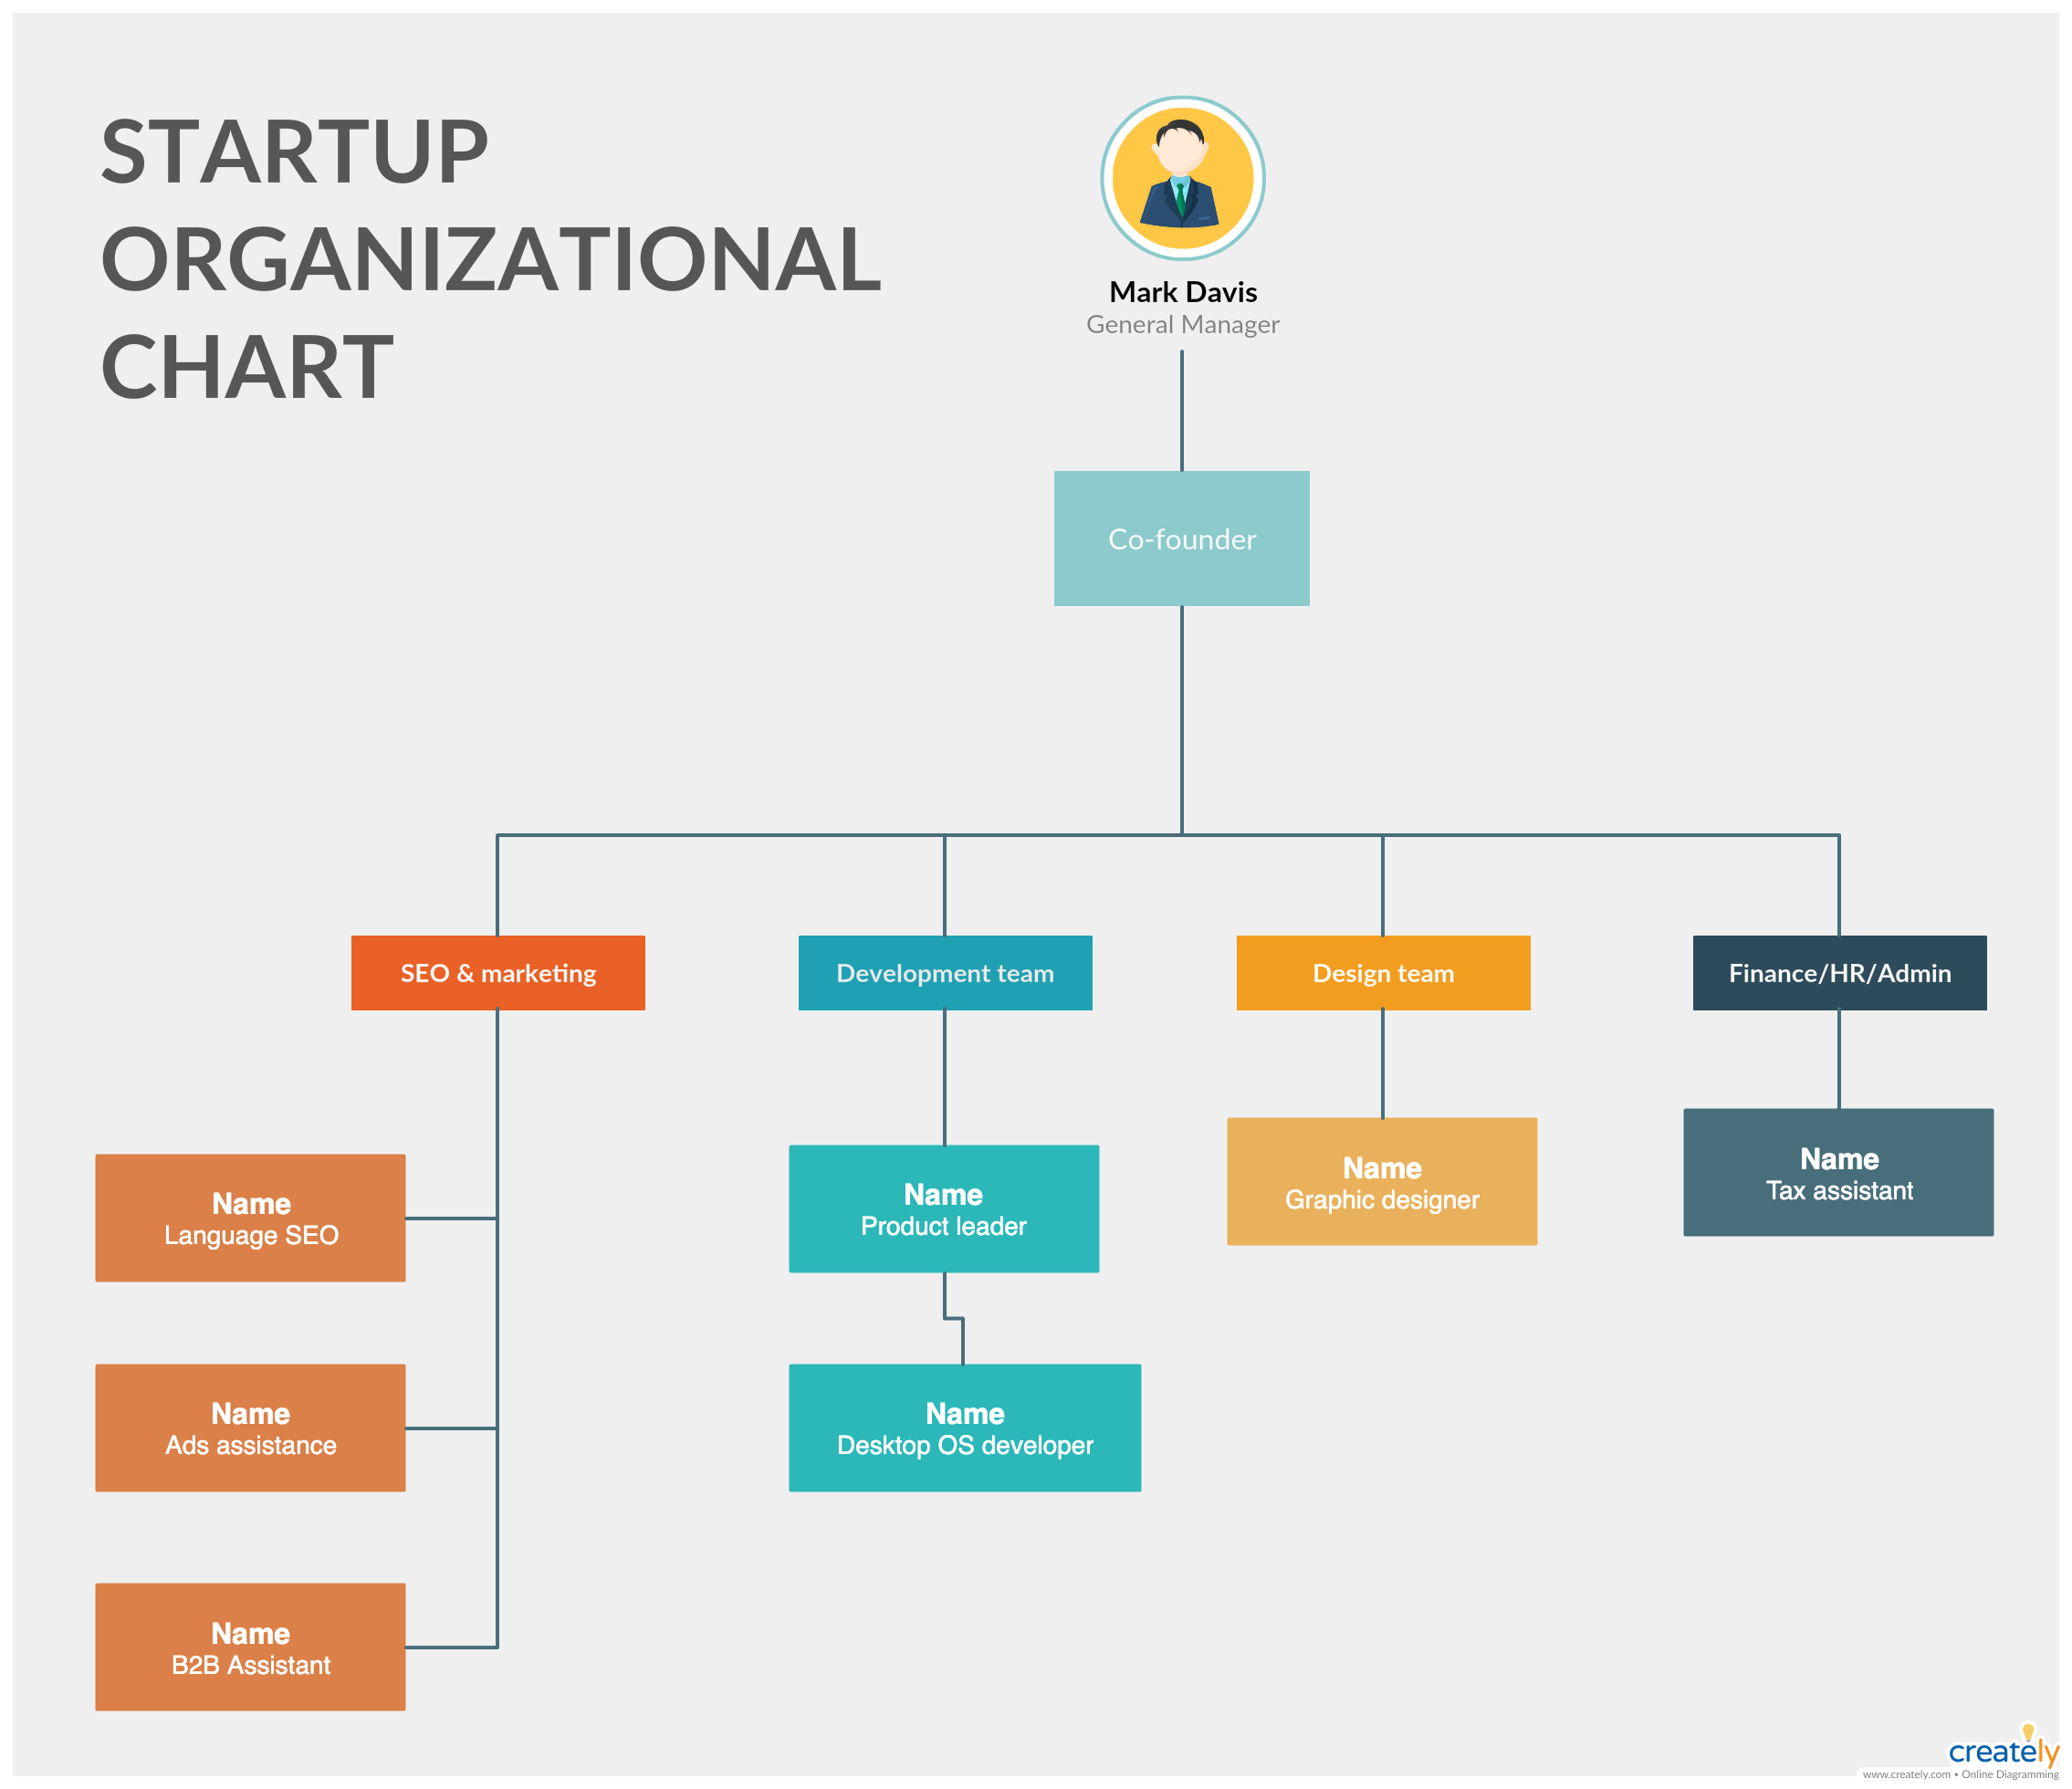 Org Chart Best Practices for Effective Organizational